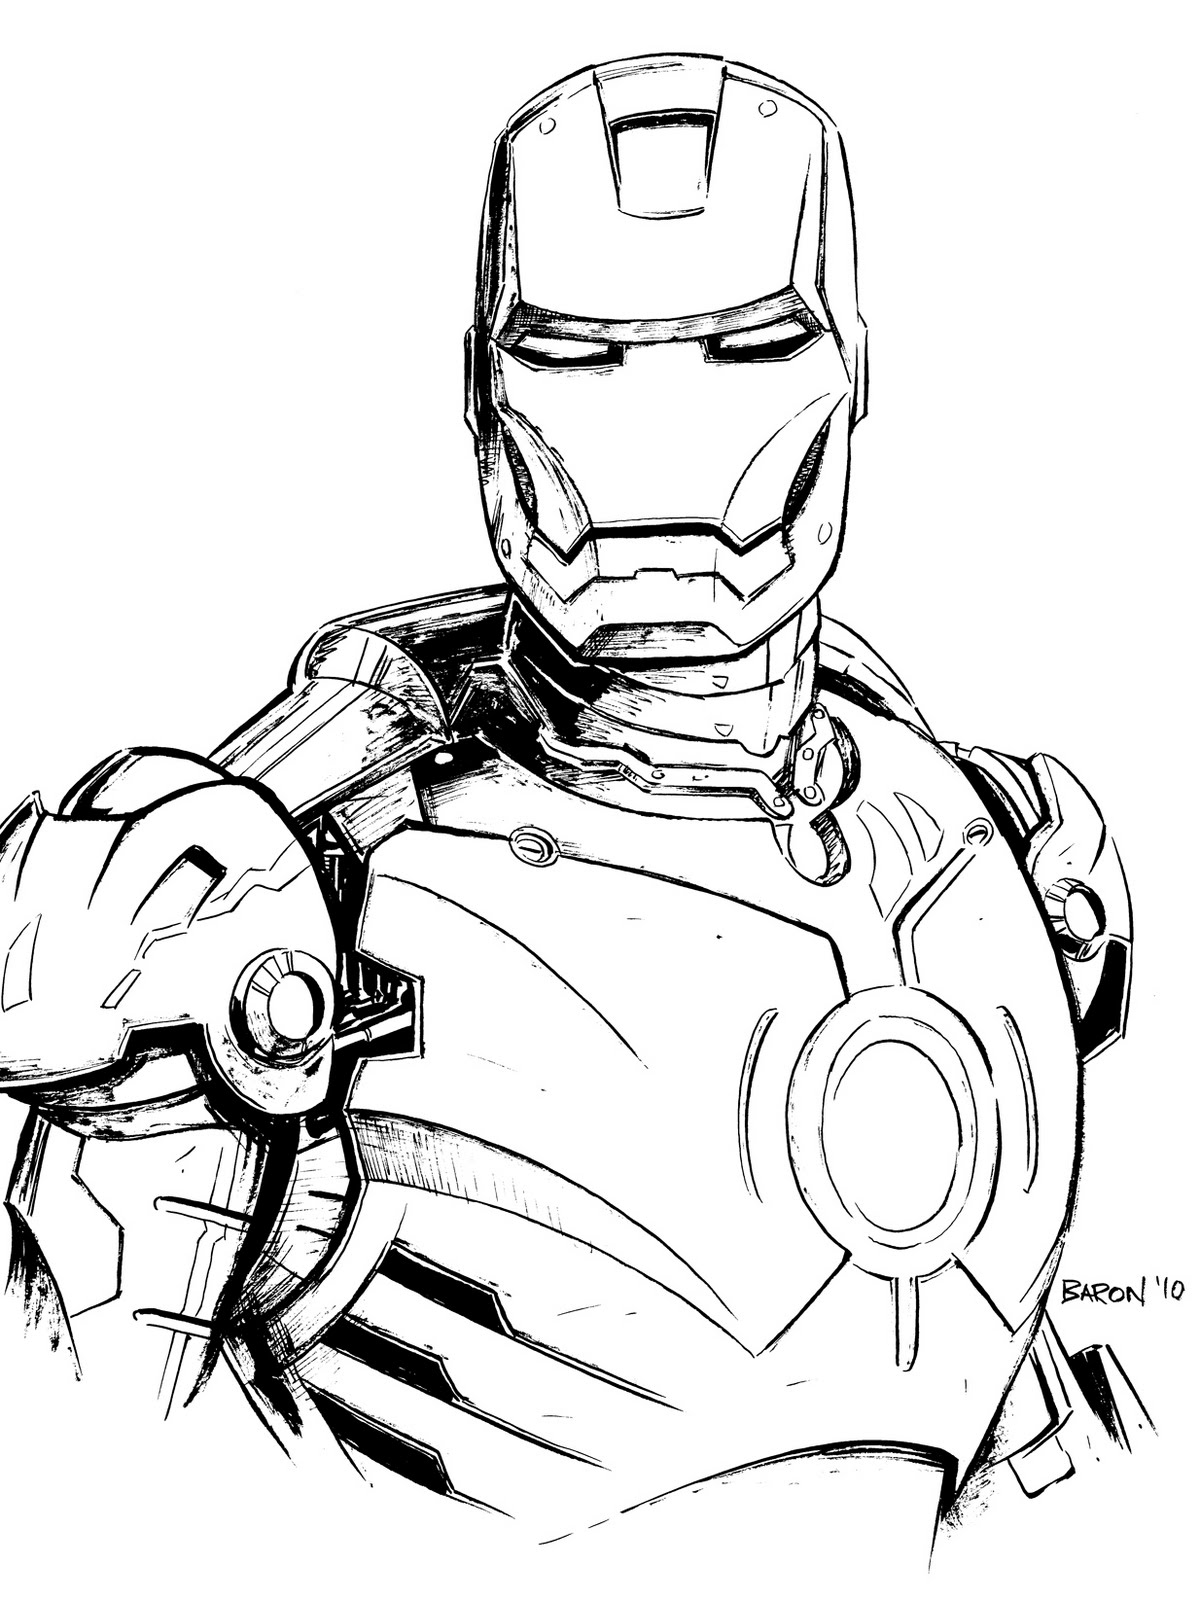 ironman coloring sheets coloring pages for kids free images iron man avengers sheets coloring ironman